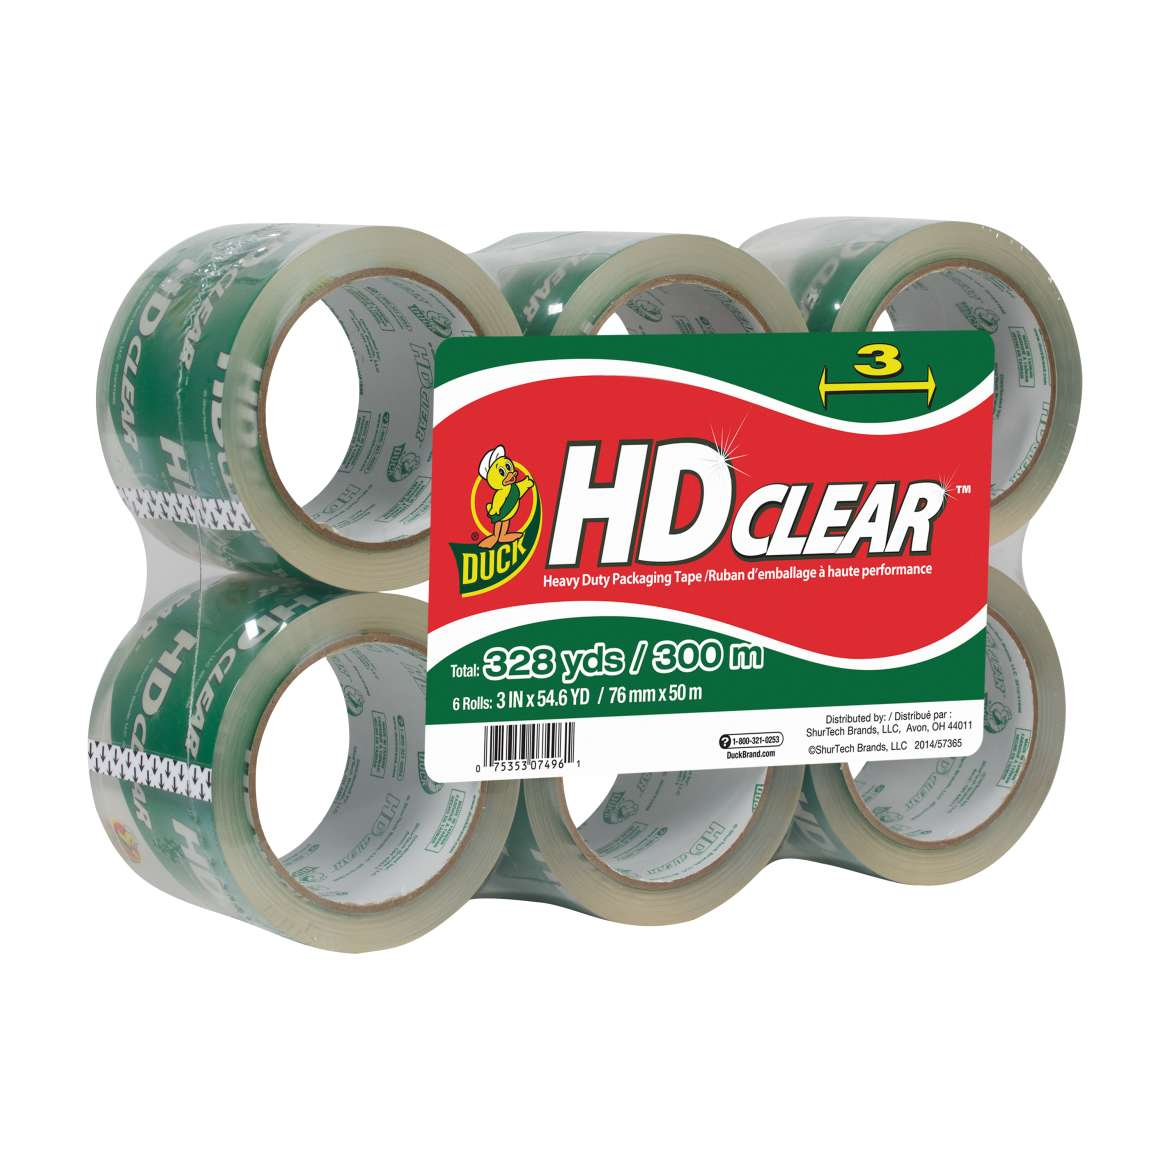 HD Clear™ Heavy Duty Packaging Tape - Clear, 6 pk, 3 in. x 54.6 yd. Image